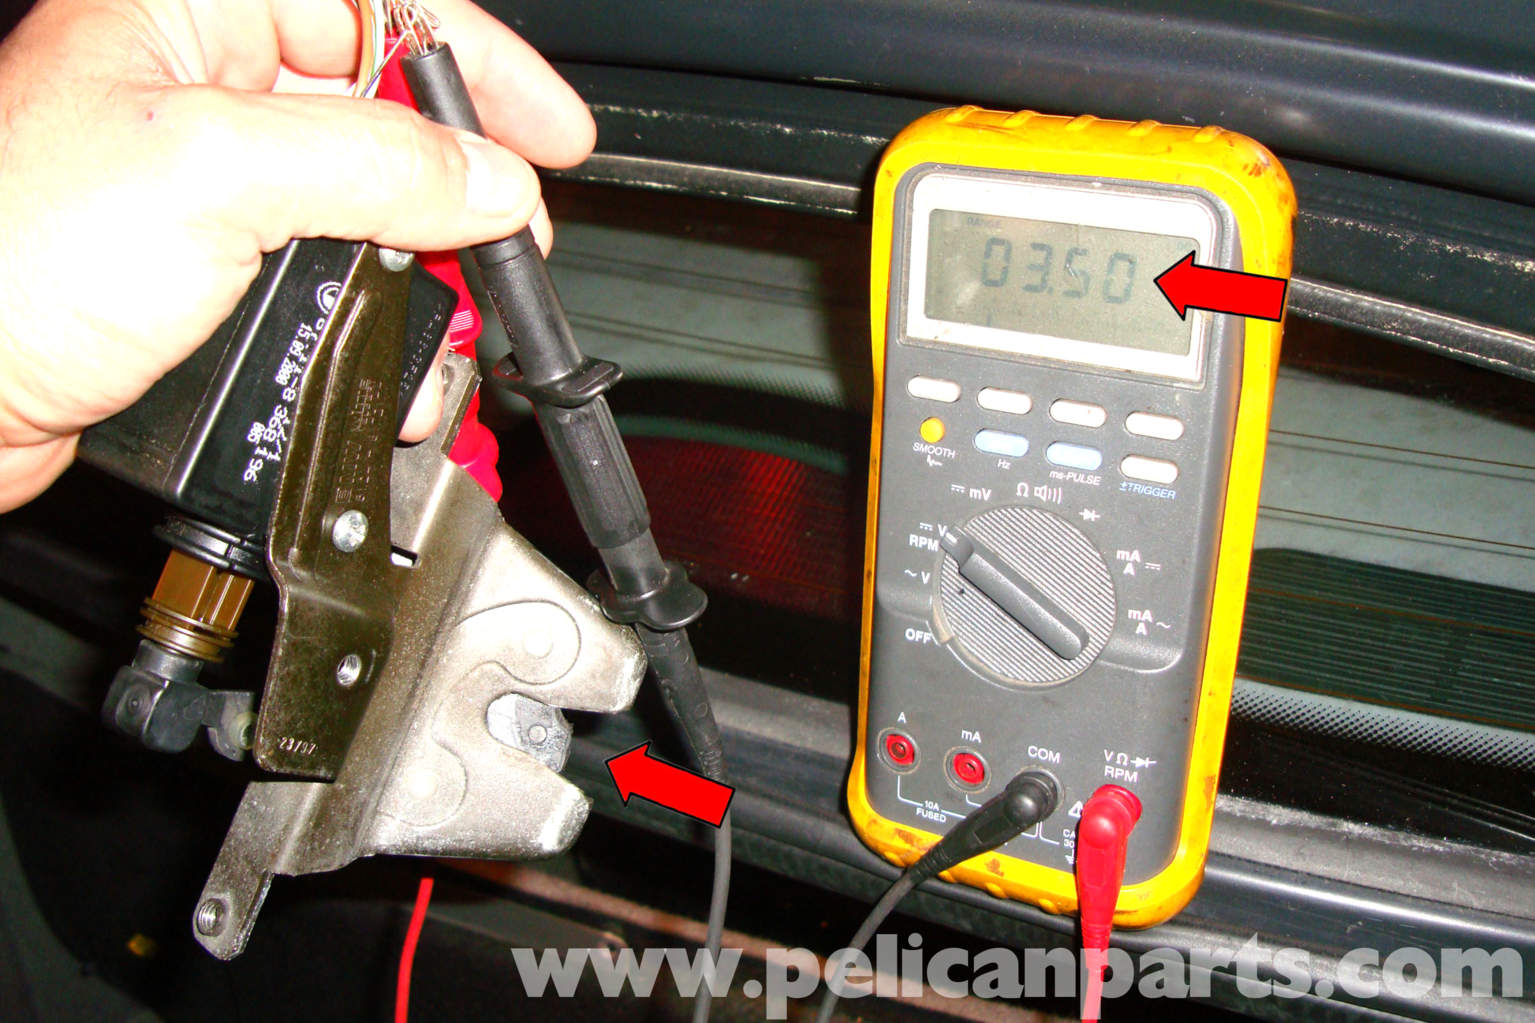 BMW    E39 5Series    Trunk       Latch    Testing and Replacement